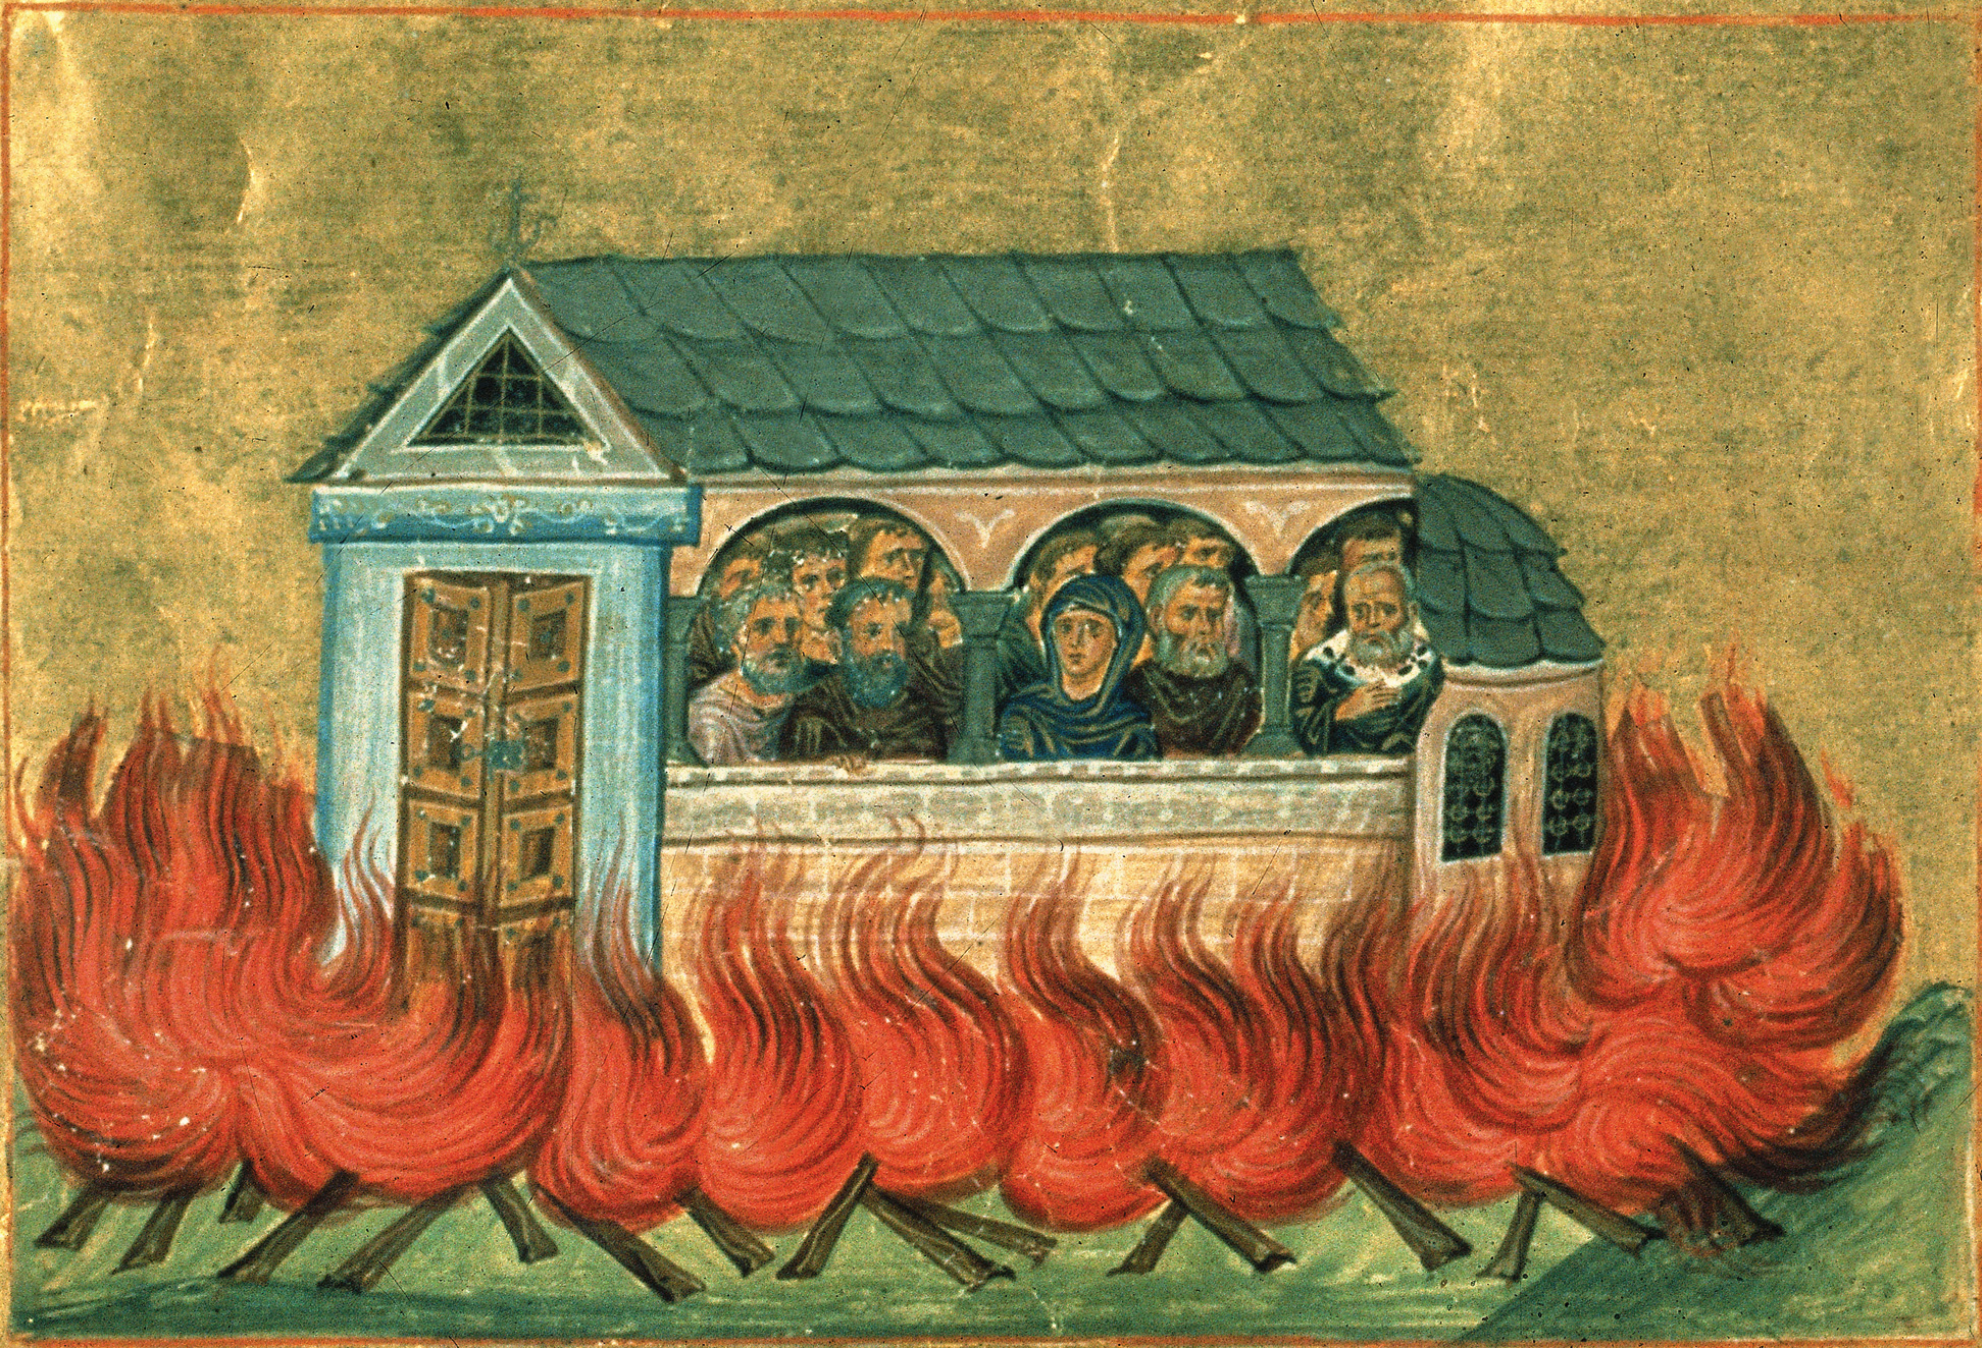 Diocletian-Martyrs of Nicomedia